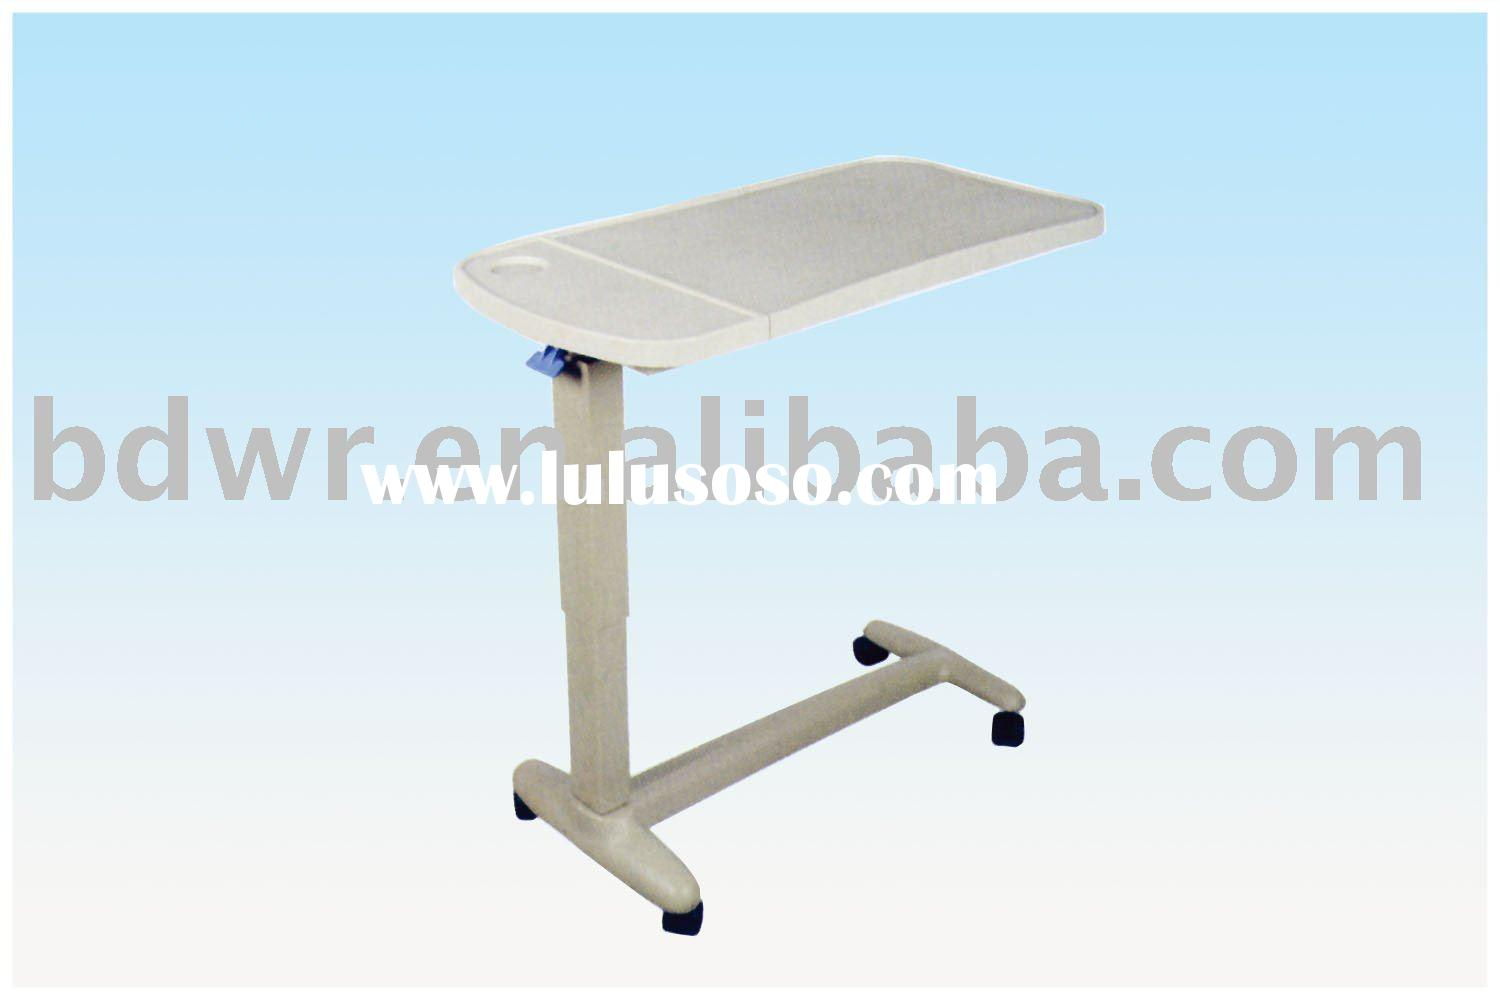 Ikea Unterschrank Gefrierschrank ~ table, over hospital bed table Manufacturers in LuLuSoSo com  page 1